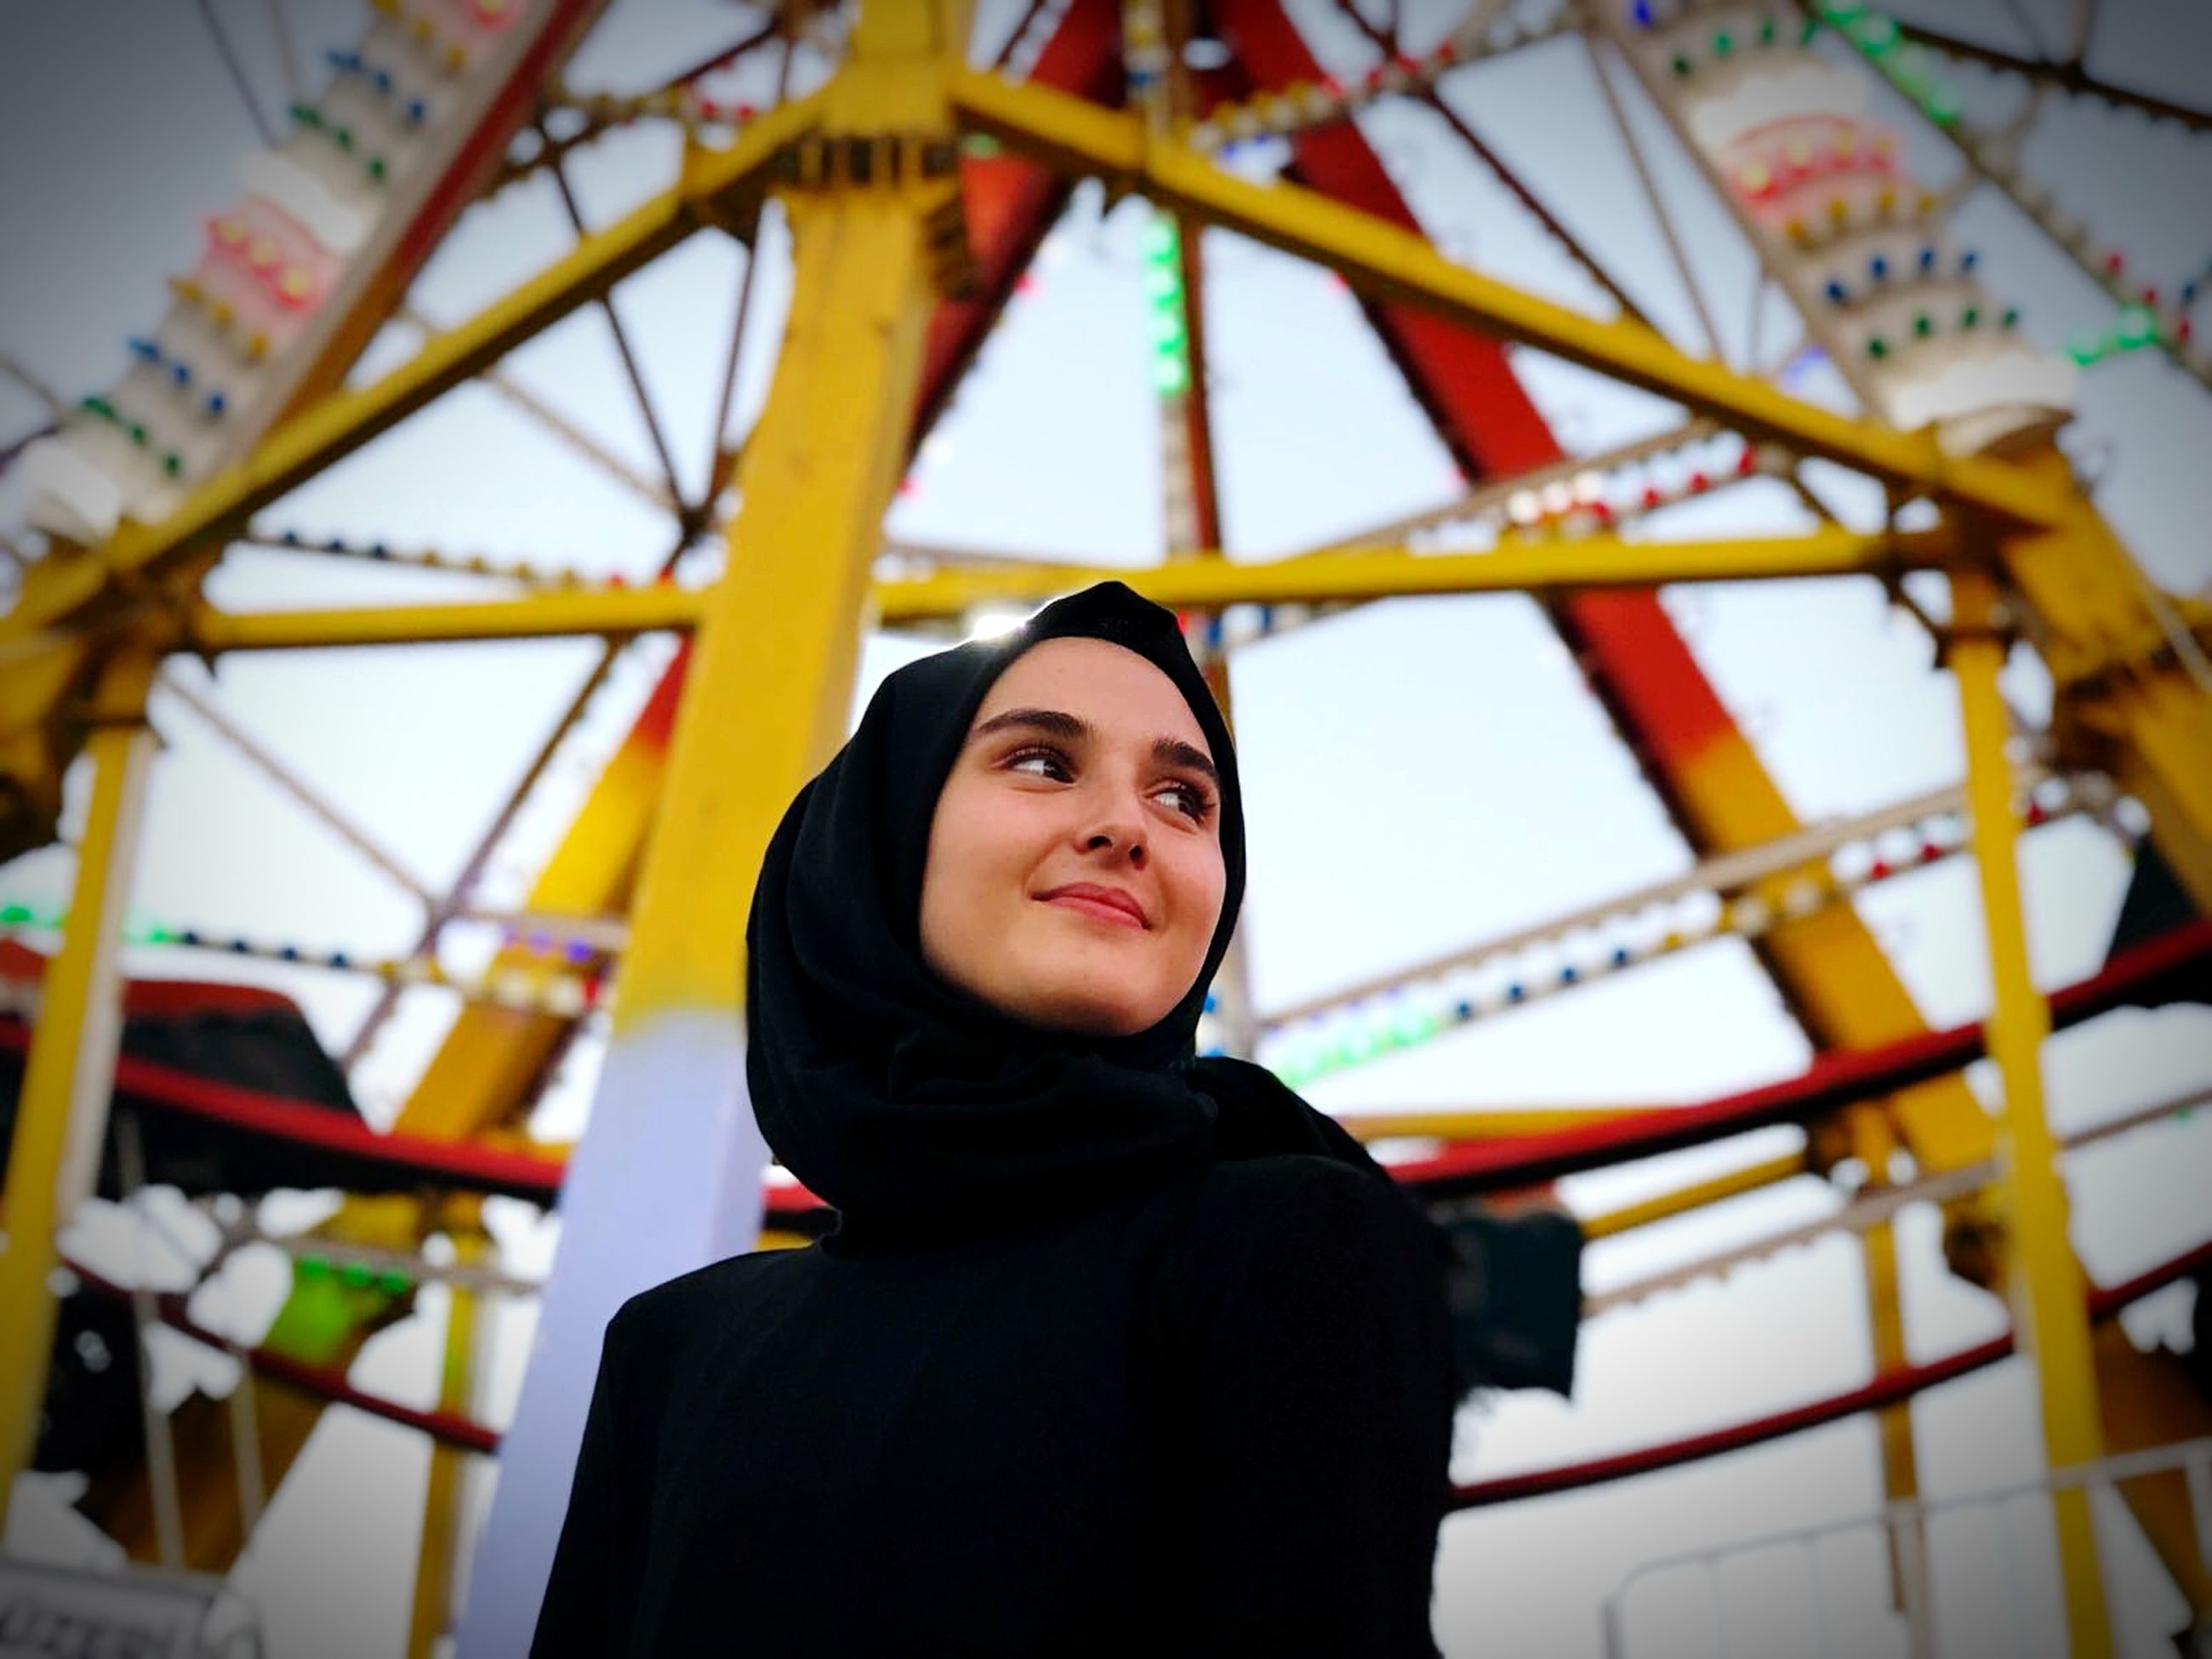 real people, one person, lifestyles, portrait, leisure activity, young adult, young women, smiling, waist up, amusement park ride, amusement park, low angle view, casual clothing, happiness, focus on foreground, front view, standing, arts culture and entertainment